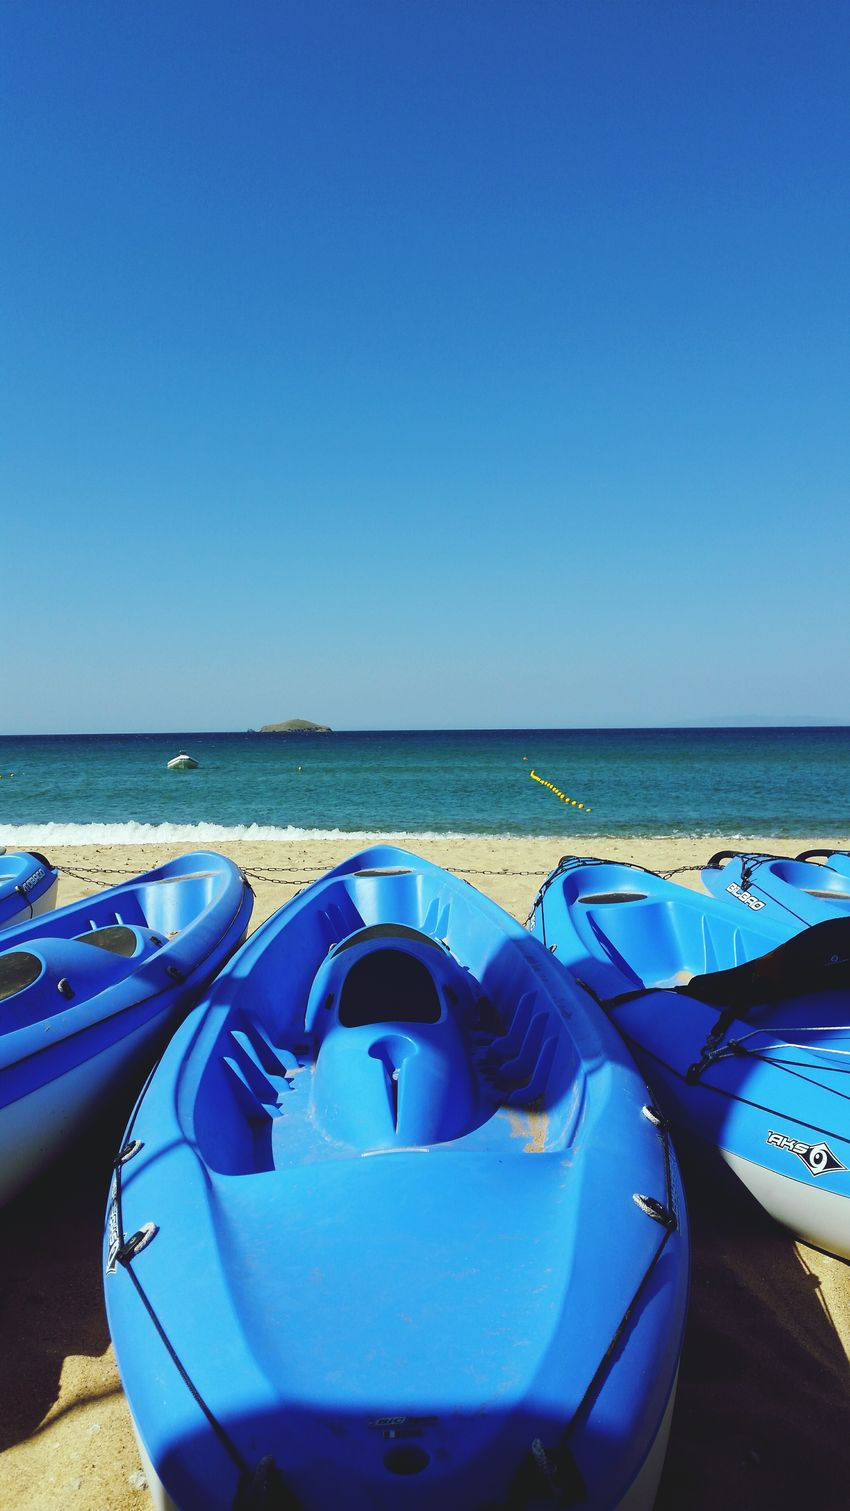 Taking Photos Hanging Out Check This Out Hello World Relaxing Enjoying Life Colorfull GREECE ♥♥ Seaview Windsurfing time